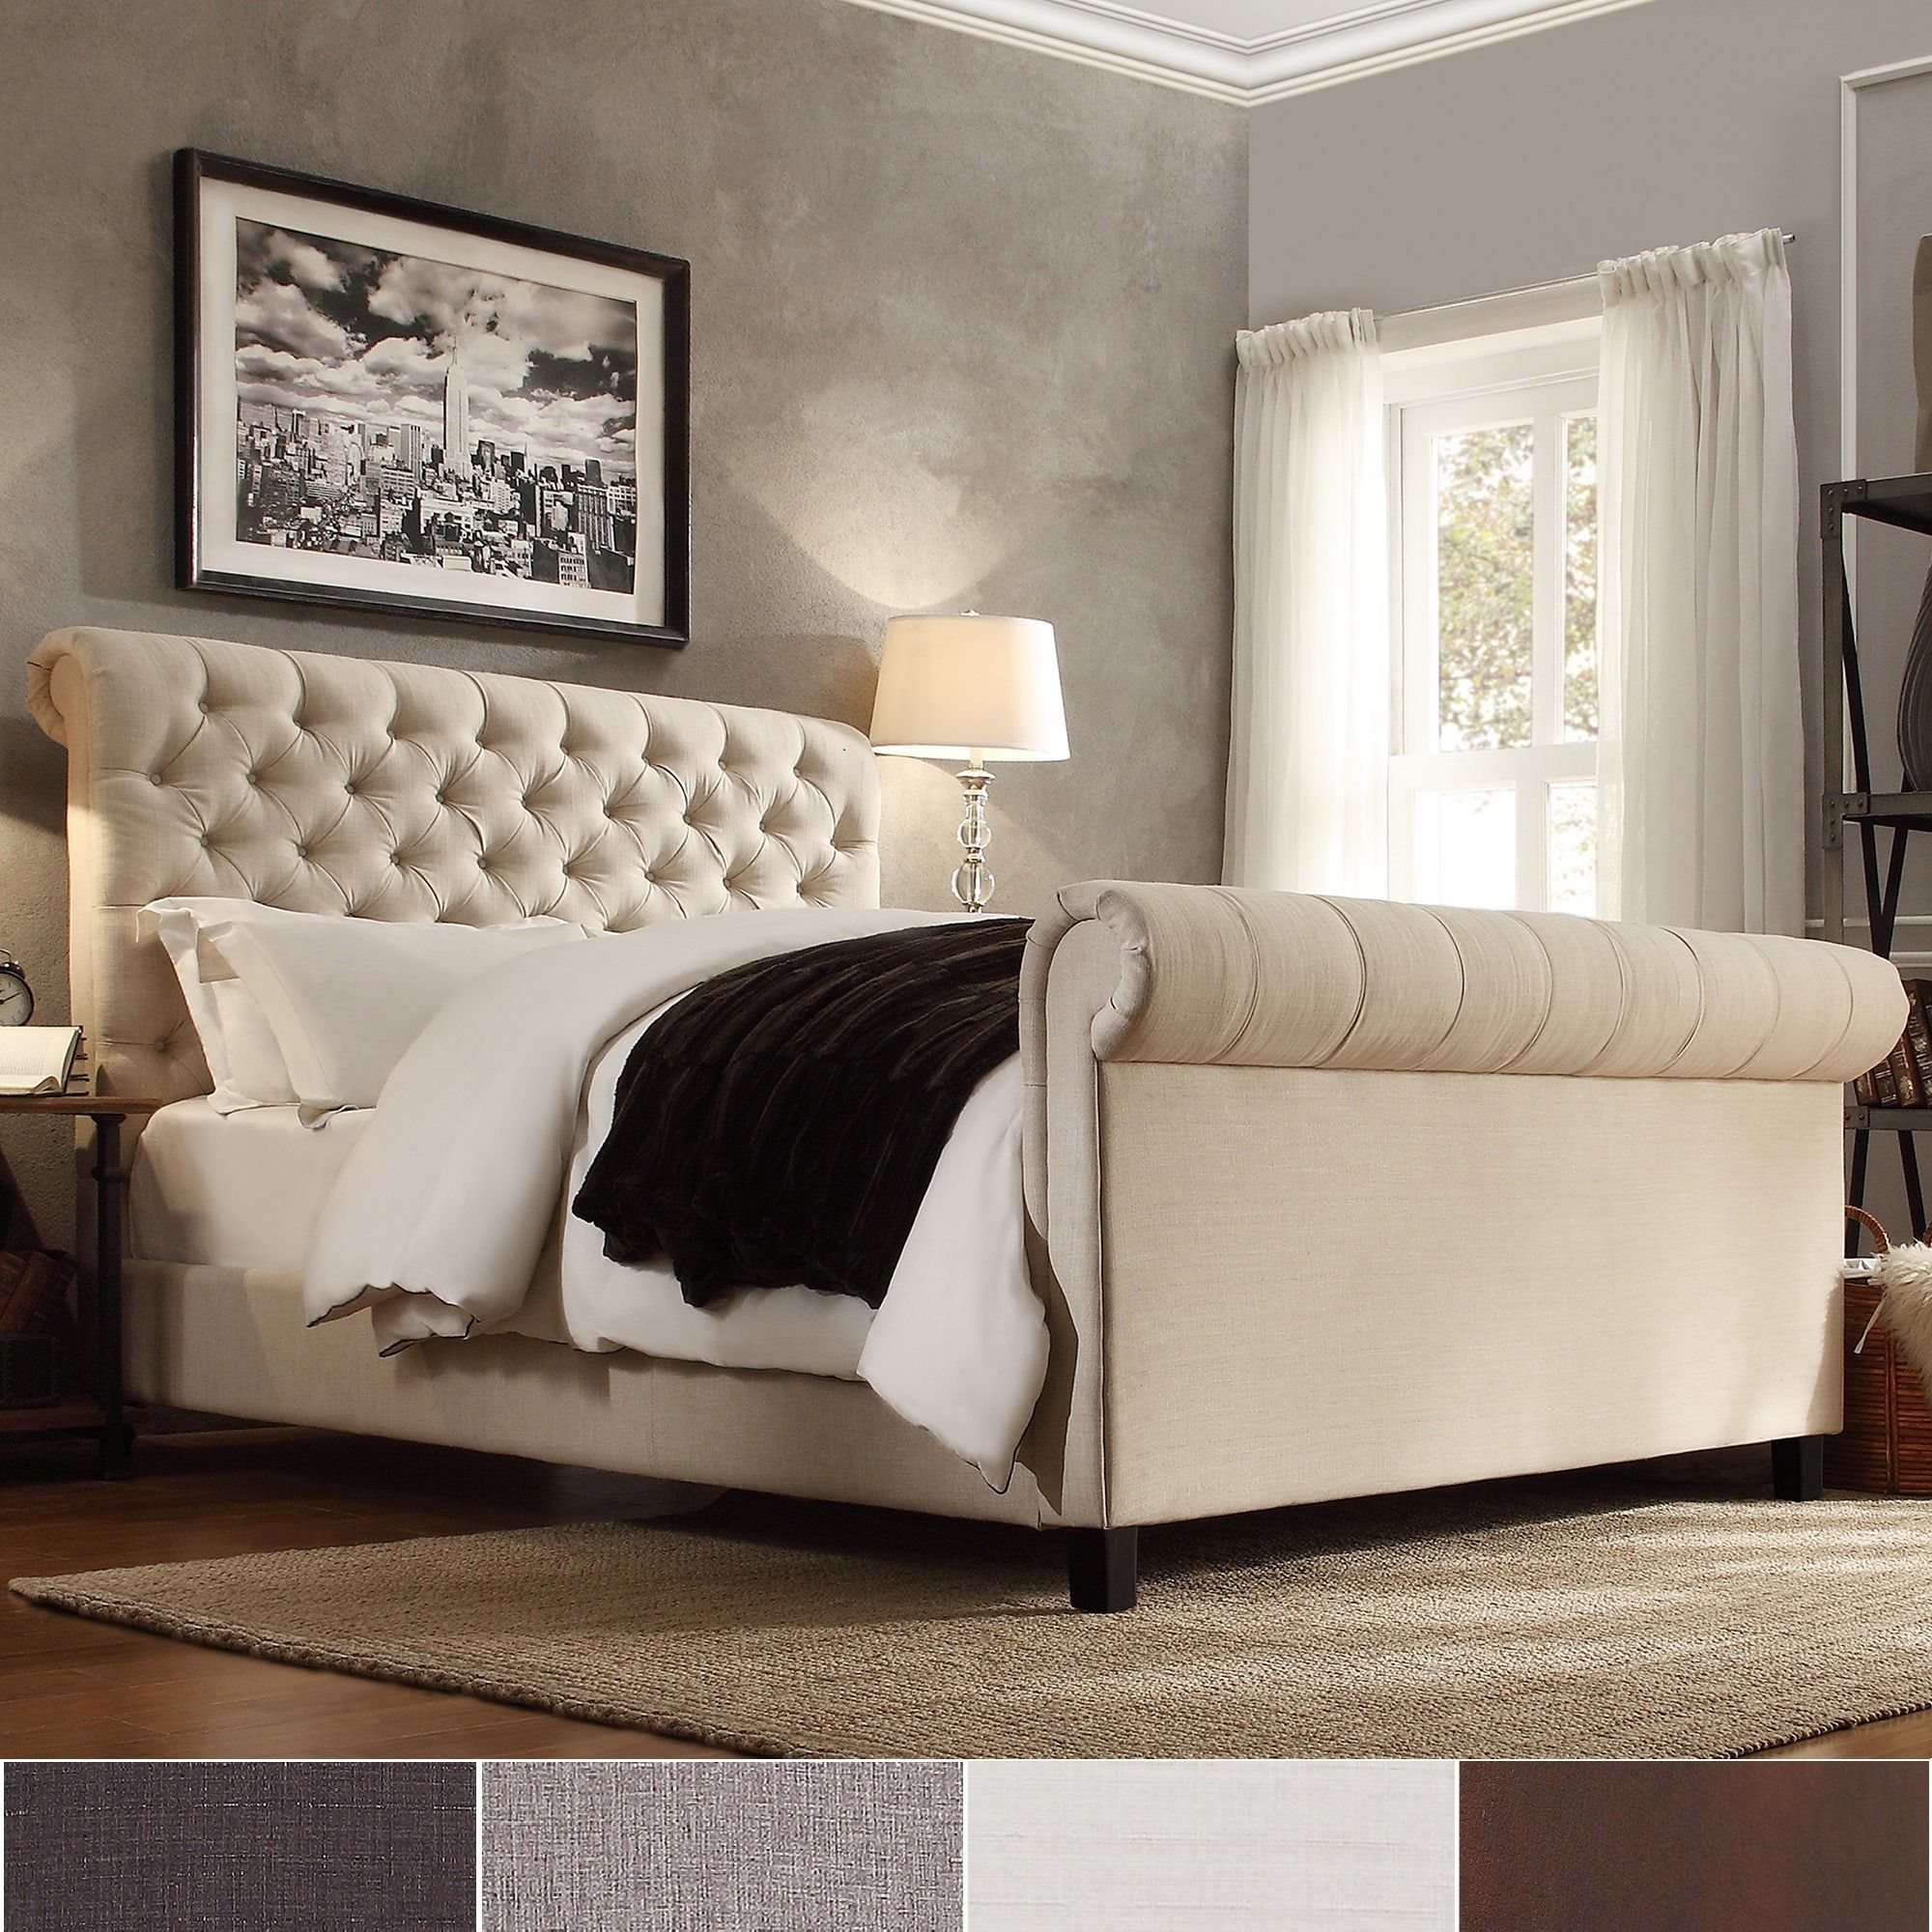 Knightsbridge Beige Linen Rolled Top Tufted Chesterfield Bed With